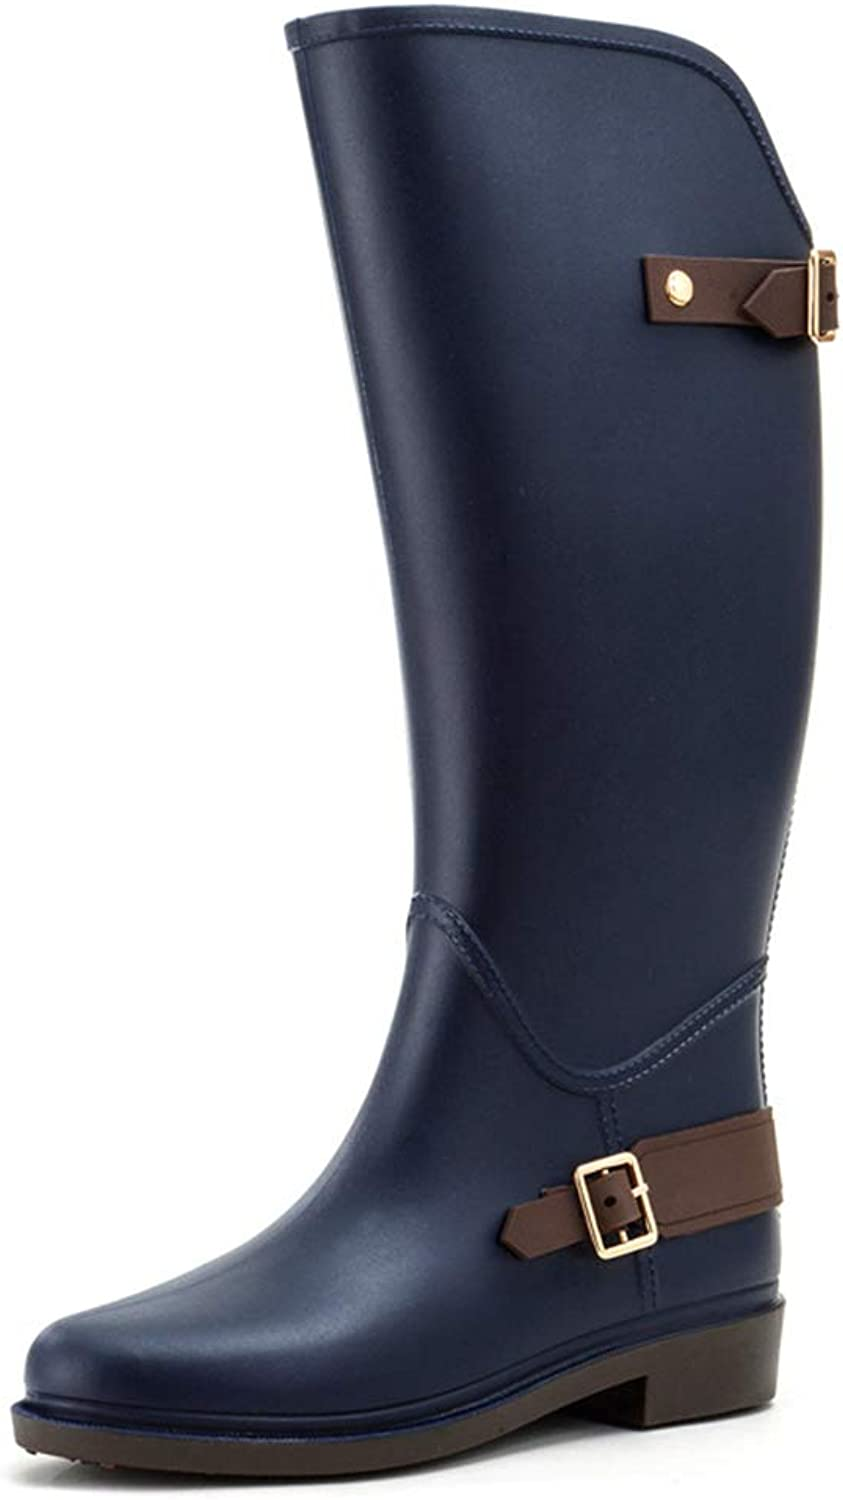 Hoxekle Women Knee-high Buckle PVC Rain Boots Non-Slip Tall Buckle Waterproof Water shoes Woman Large Shaft